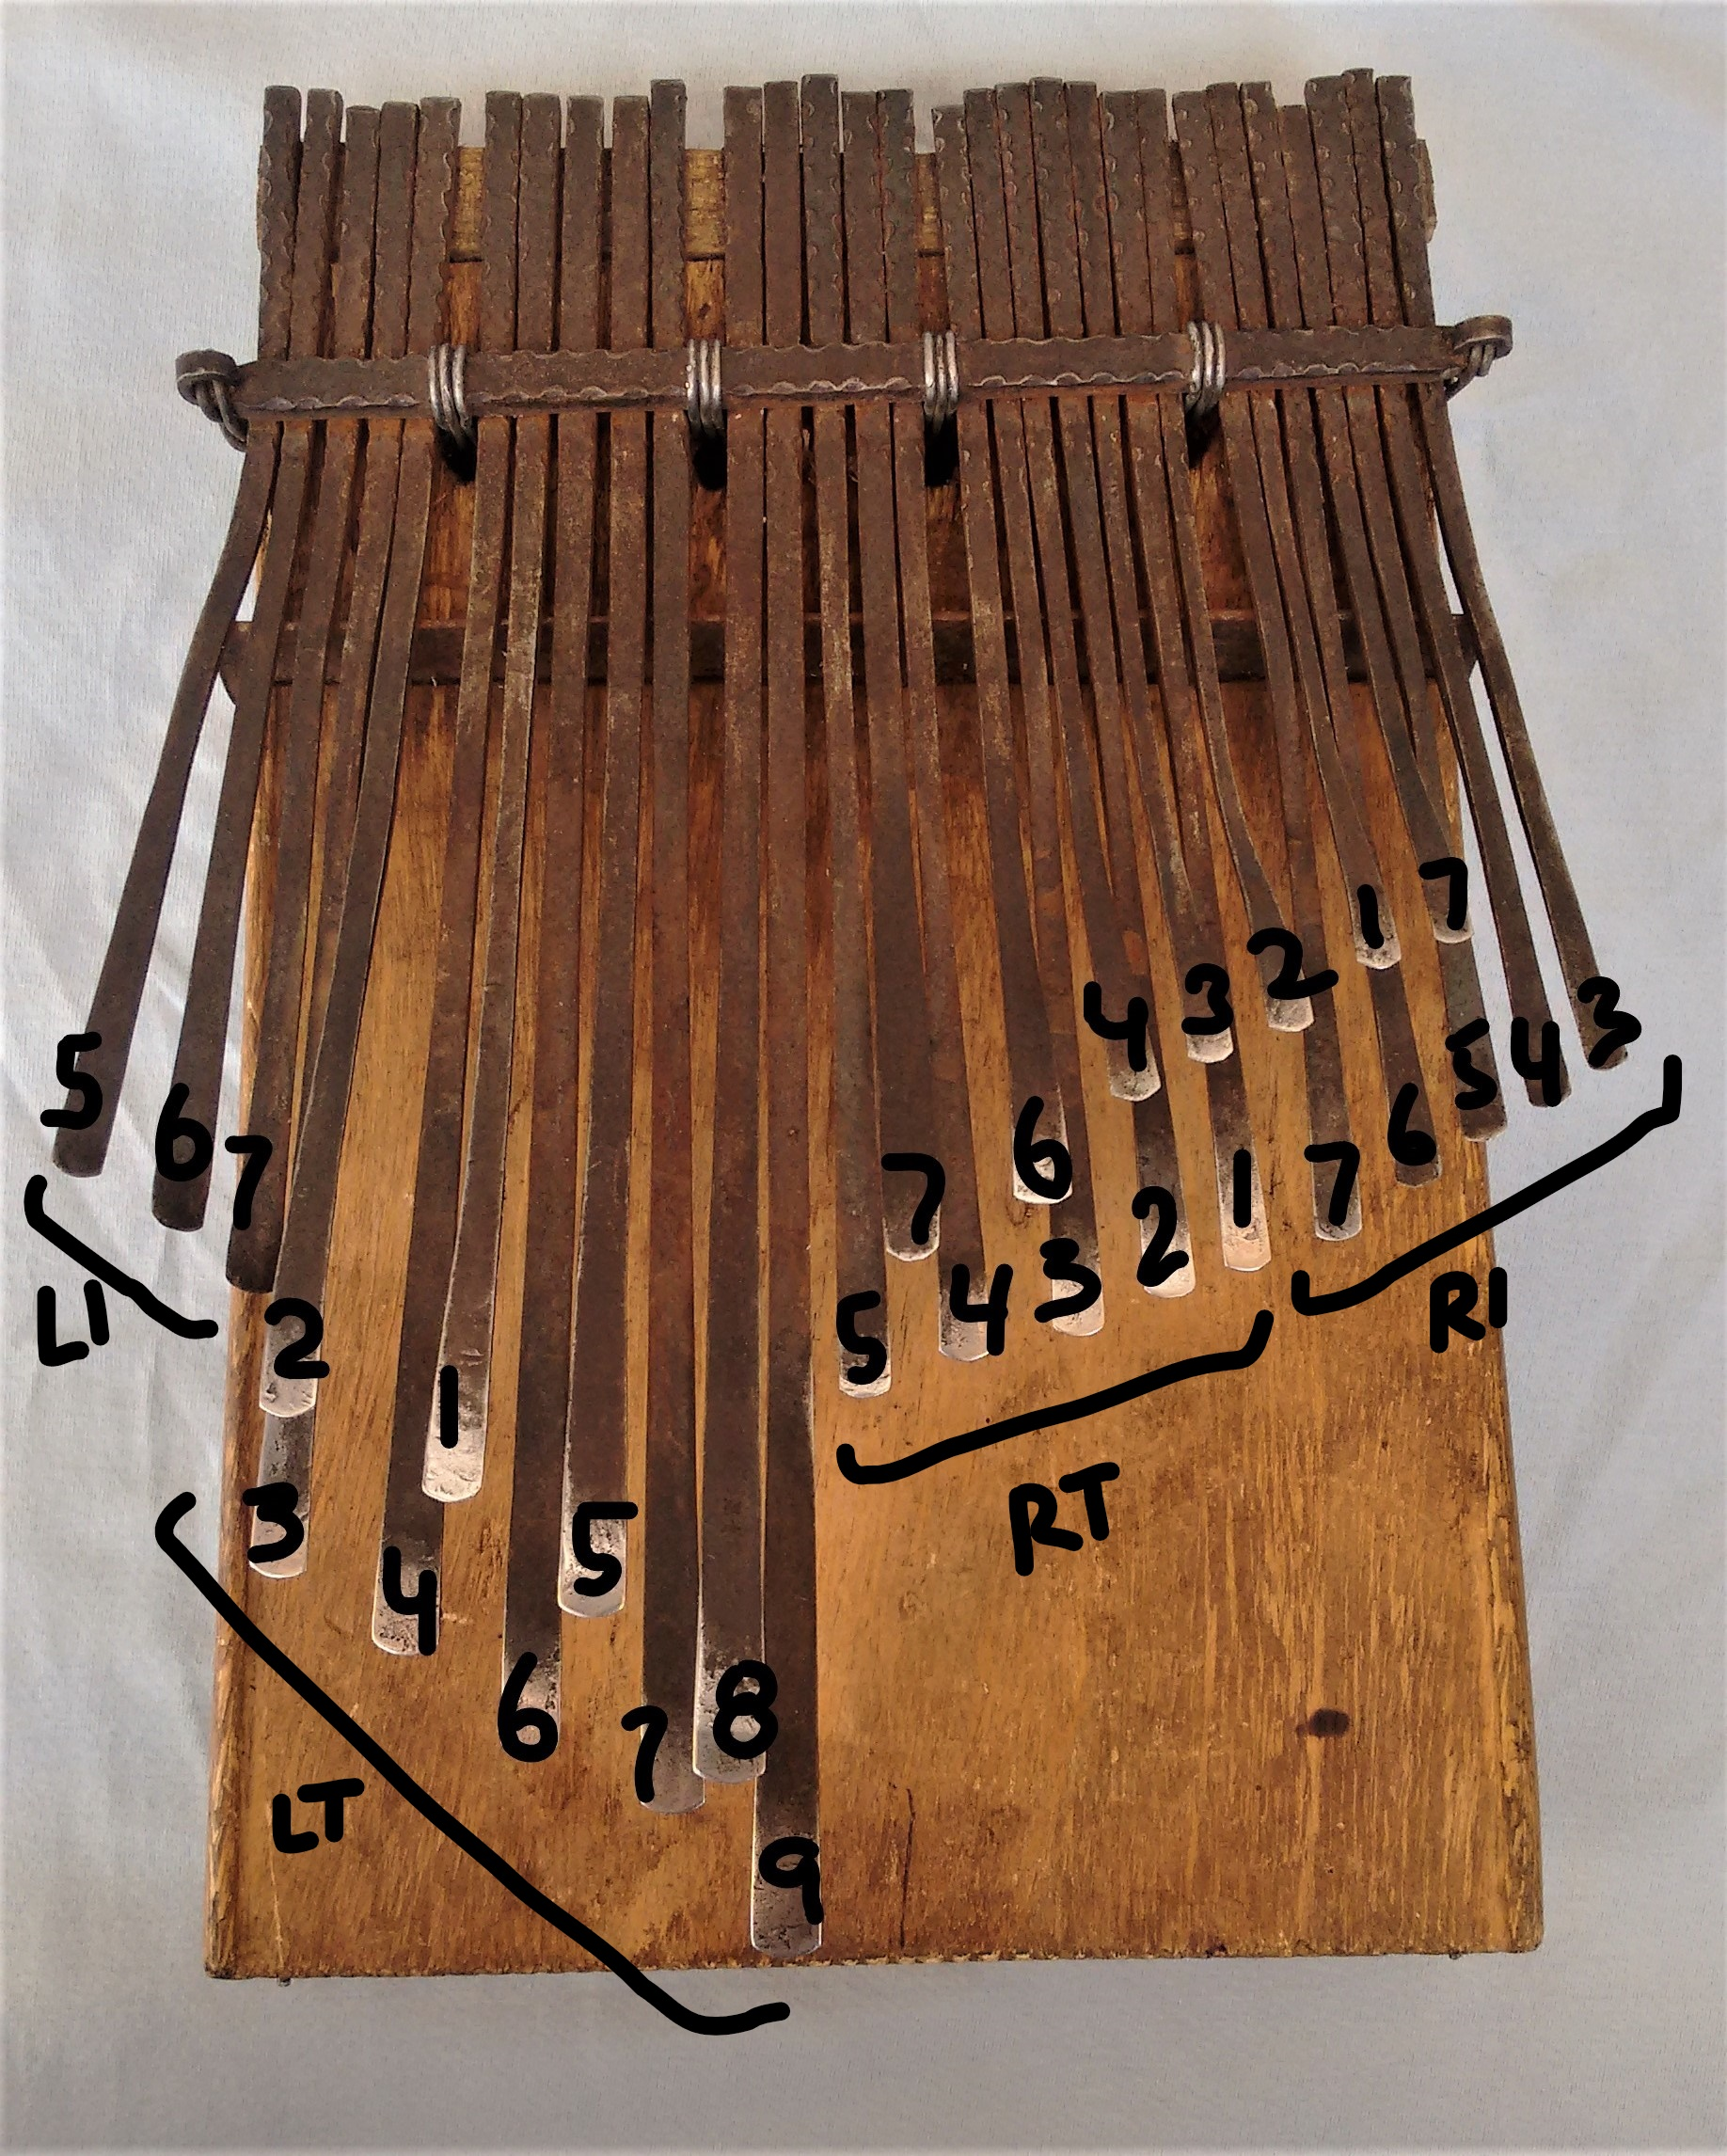 James Kamwaza's numbering system of the hera mbira. The order of the numbers follow the order of notes in the scale, but the ascending numbers correspond to a descending scale. The keys with the same numbers are octave equivalents. The notes labeled as 8 and 9 could also be named 1 and 2, but are so named to avoid repeats played by the left thumb. In this photograph I add LI, LT, RT and RI to indicate which notes are played by the Left Index, Left Thumb, Right Index and Right Thumb, respectively. The top row on the right hand side is played entirely by the Right Thumb.